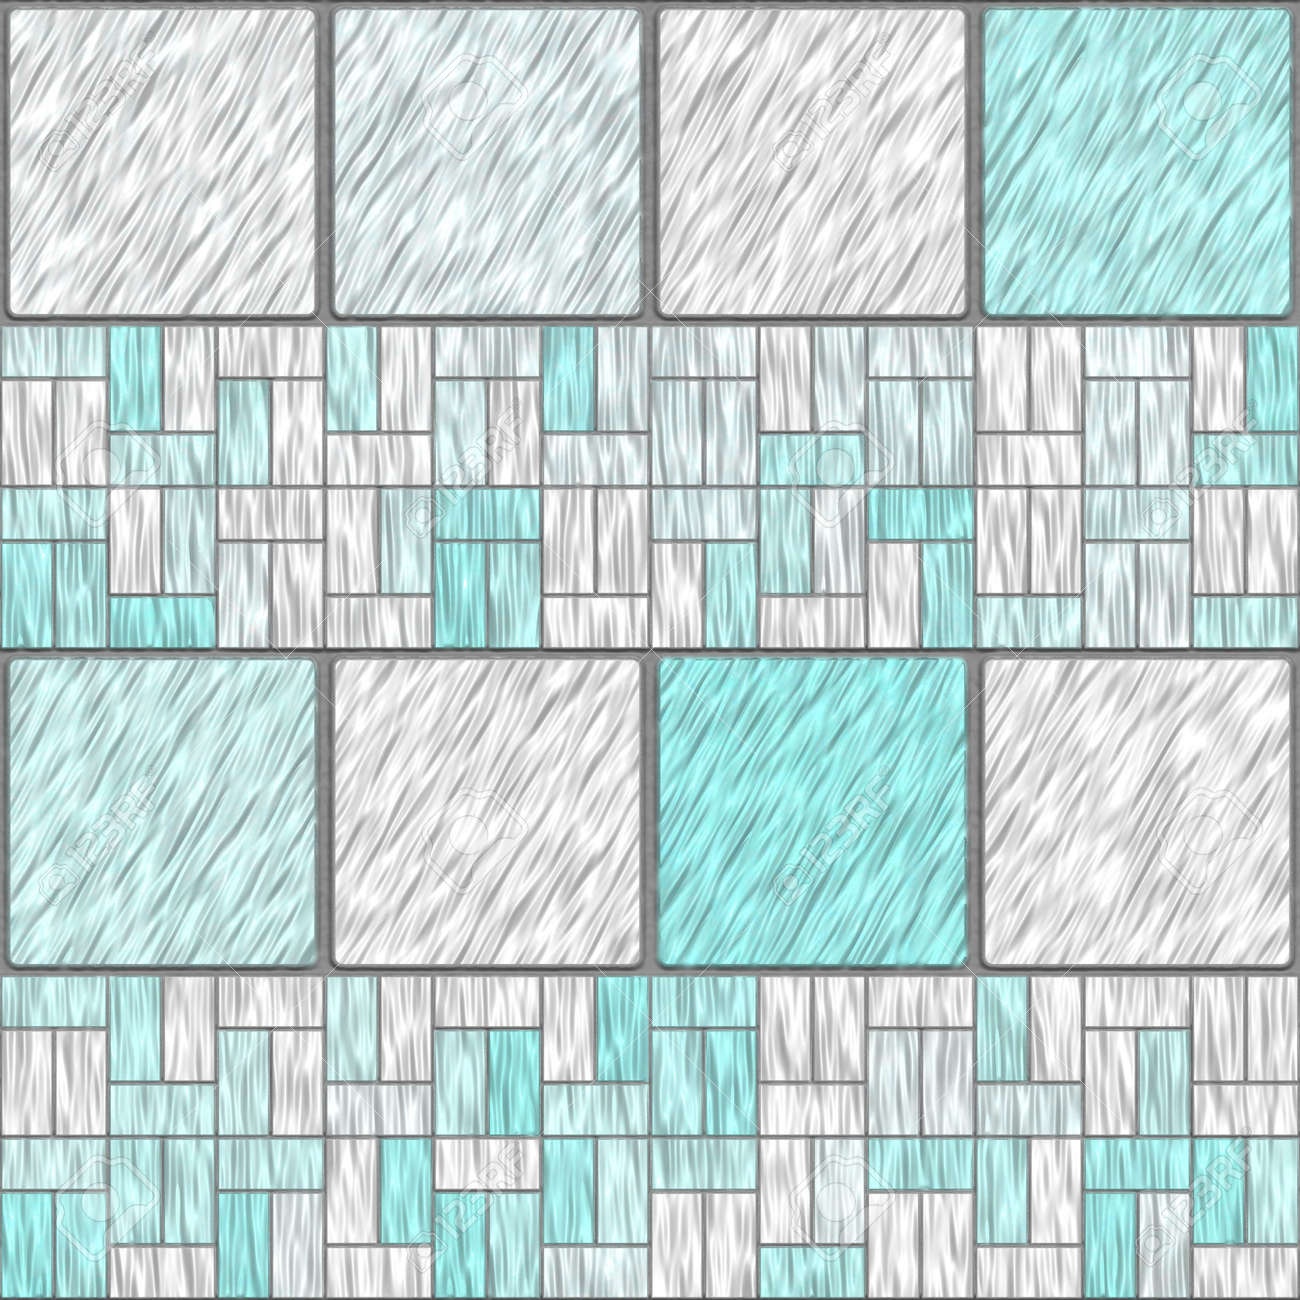 Pastel Ceramic Tiles That Tile Seamless In All Directions Stock ...